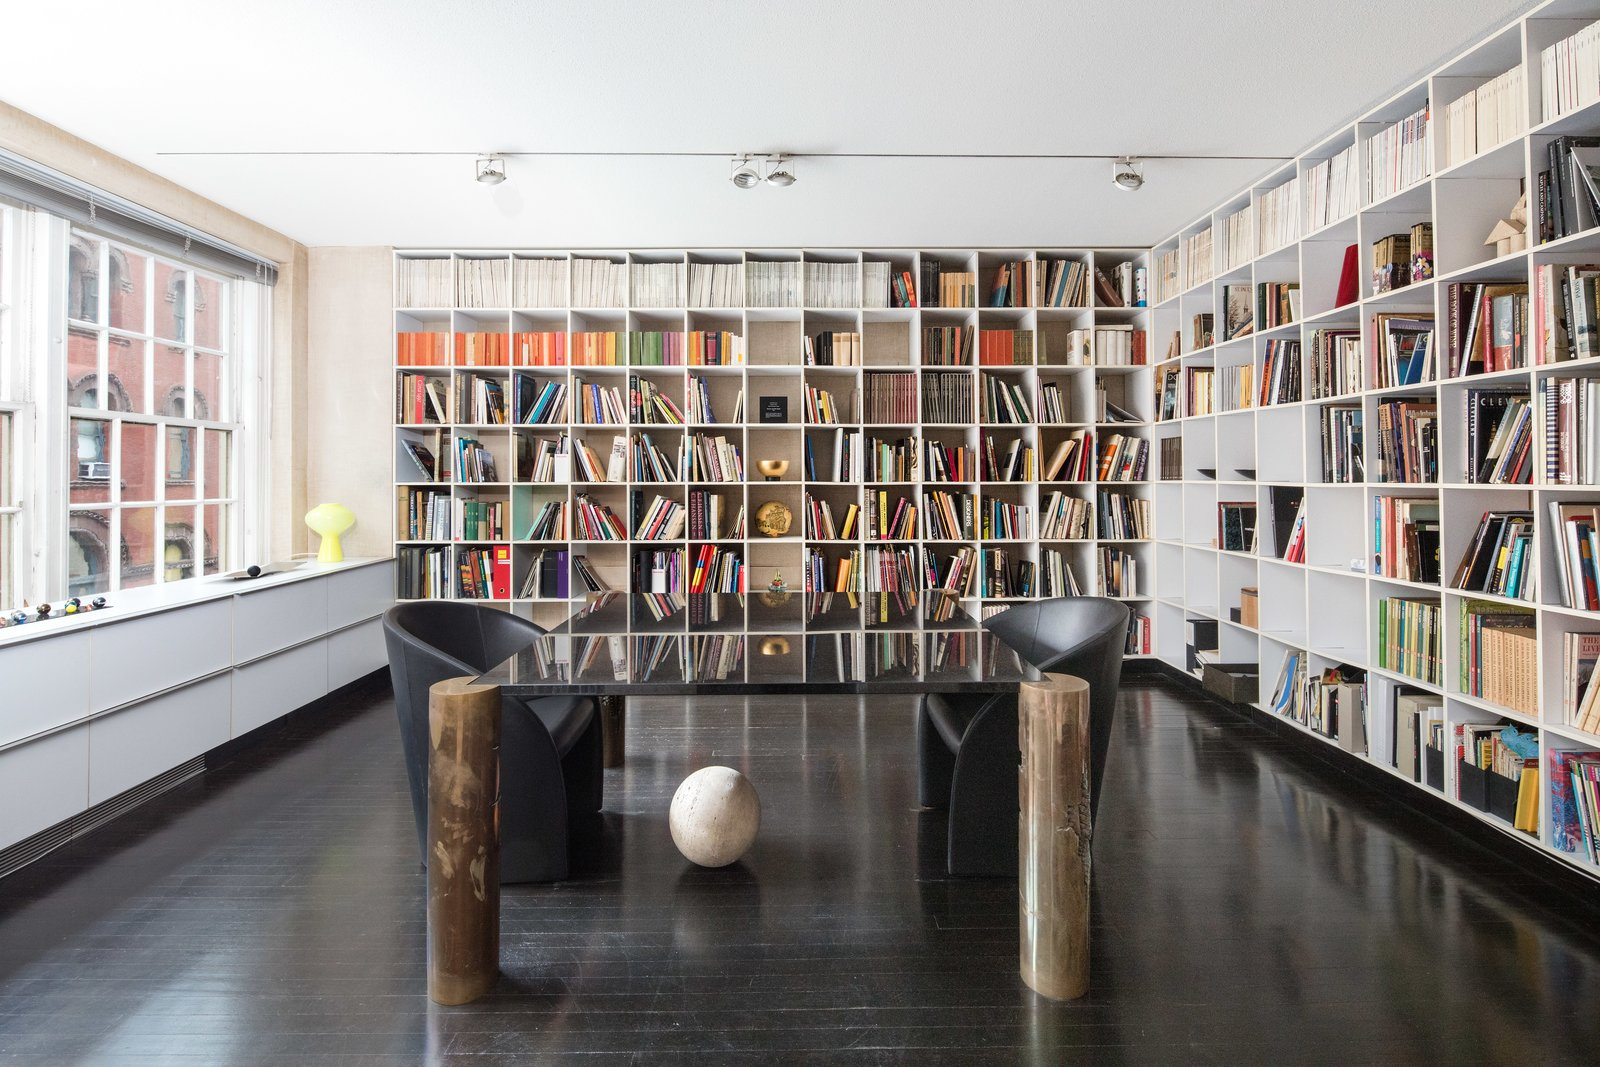 Office, Desk, Bookcase, Shelves, Study Room Type, Dark Hardwood Floor, Chair, Library Room Type, and Storage Lella Vignelli's office is lined with bookshelves. She designed the desk with legs fashioned by sculptor Arnaldo Pomodoro. The couple were known to host many cultural luminaries in the apartment, including Pomodoro and philosopher Umberto Eco.  Photo 4 of 9 in Legendary Designers Massimo and Lella Vignelli's New York Duplex Is Listed at $6.5M